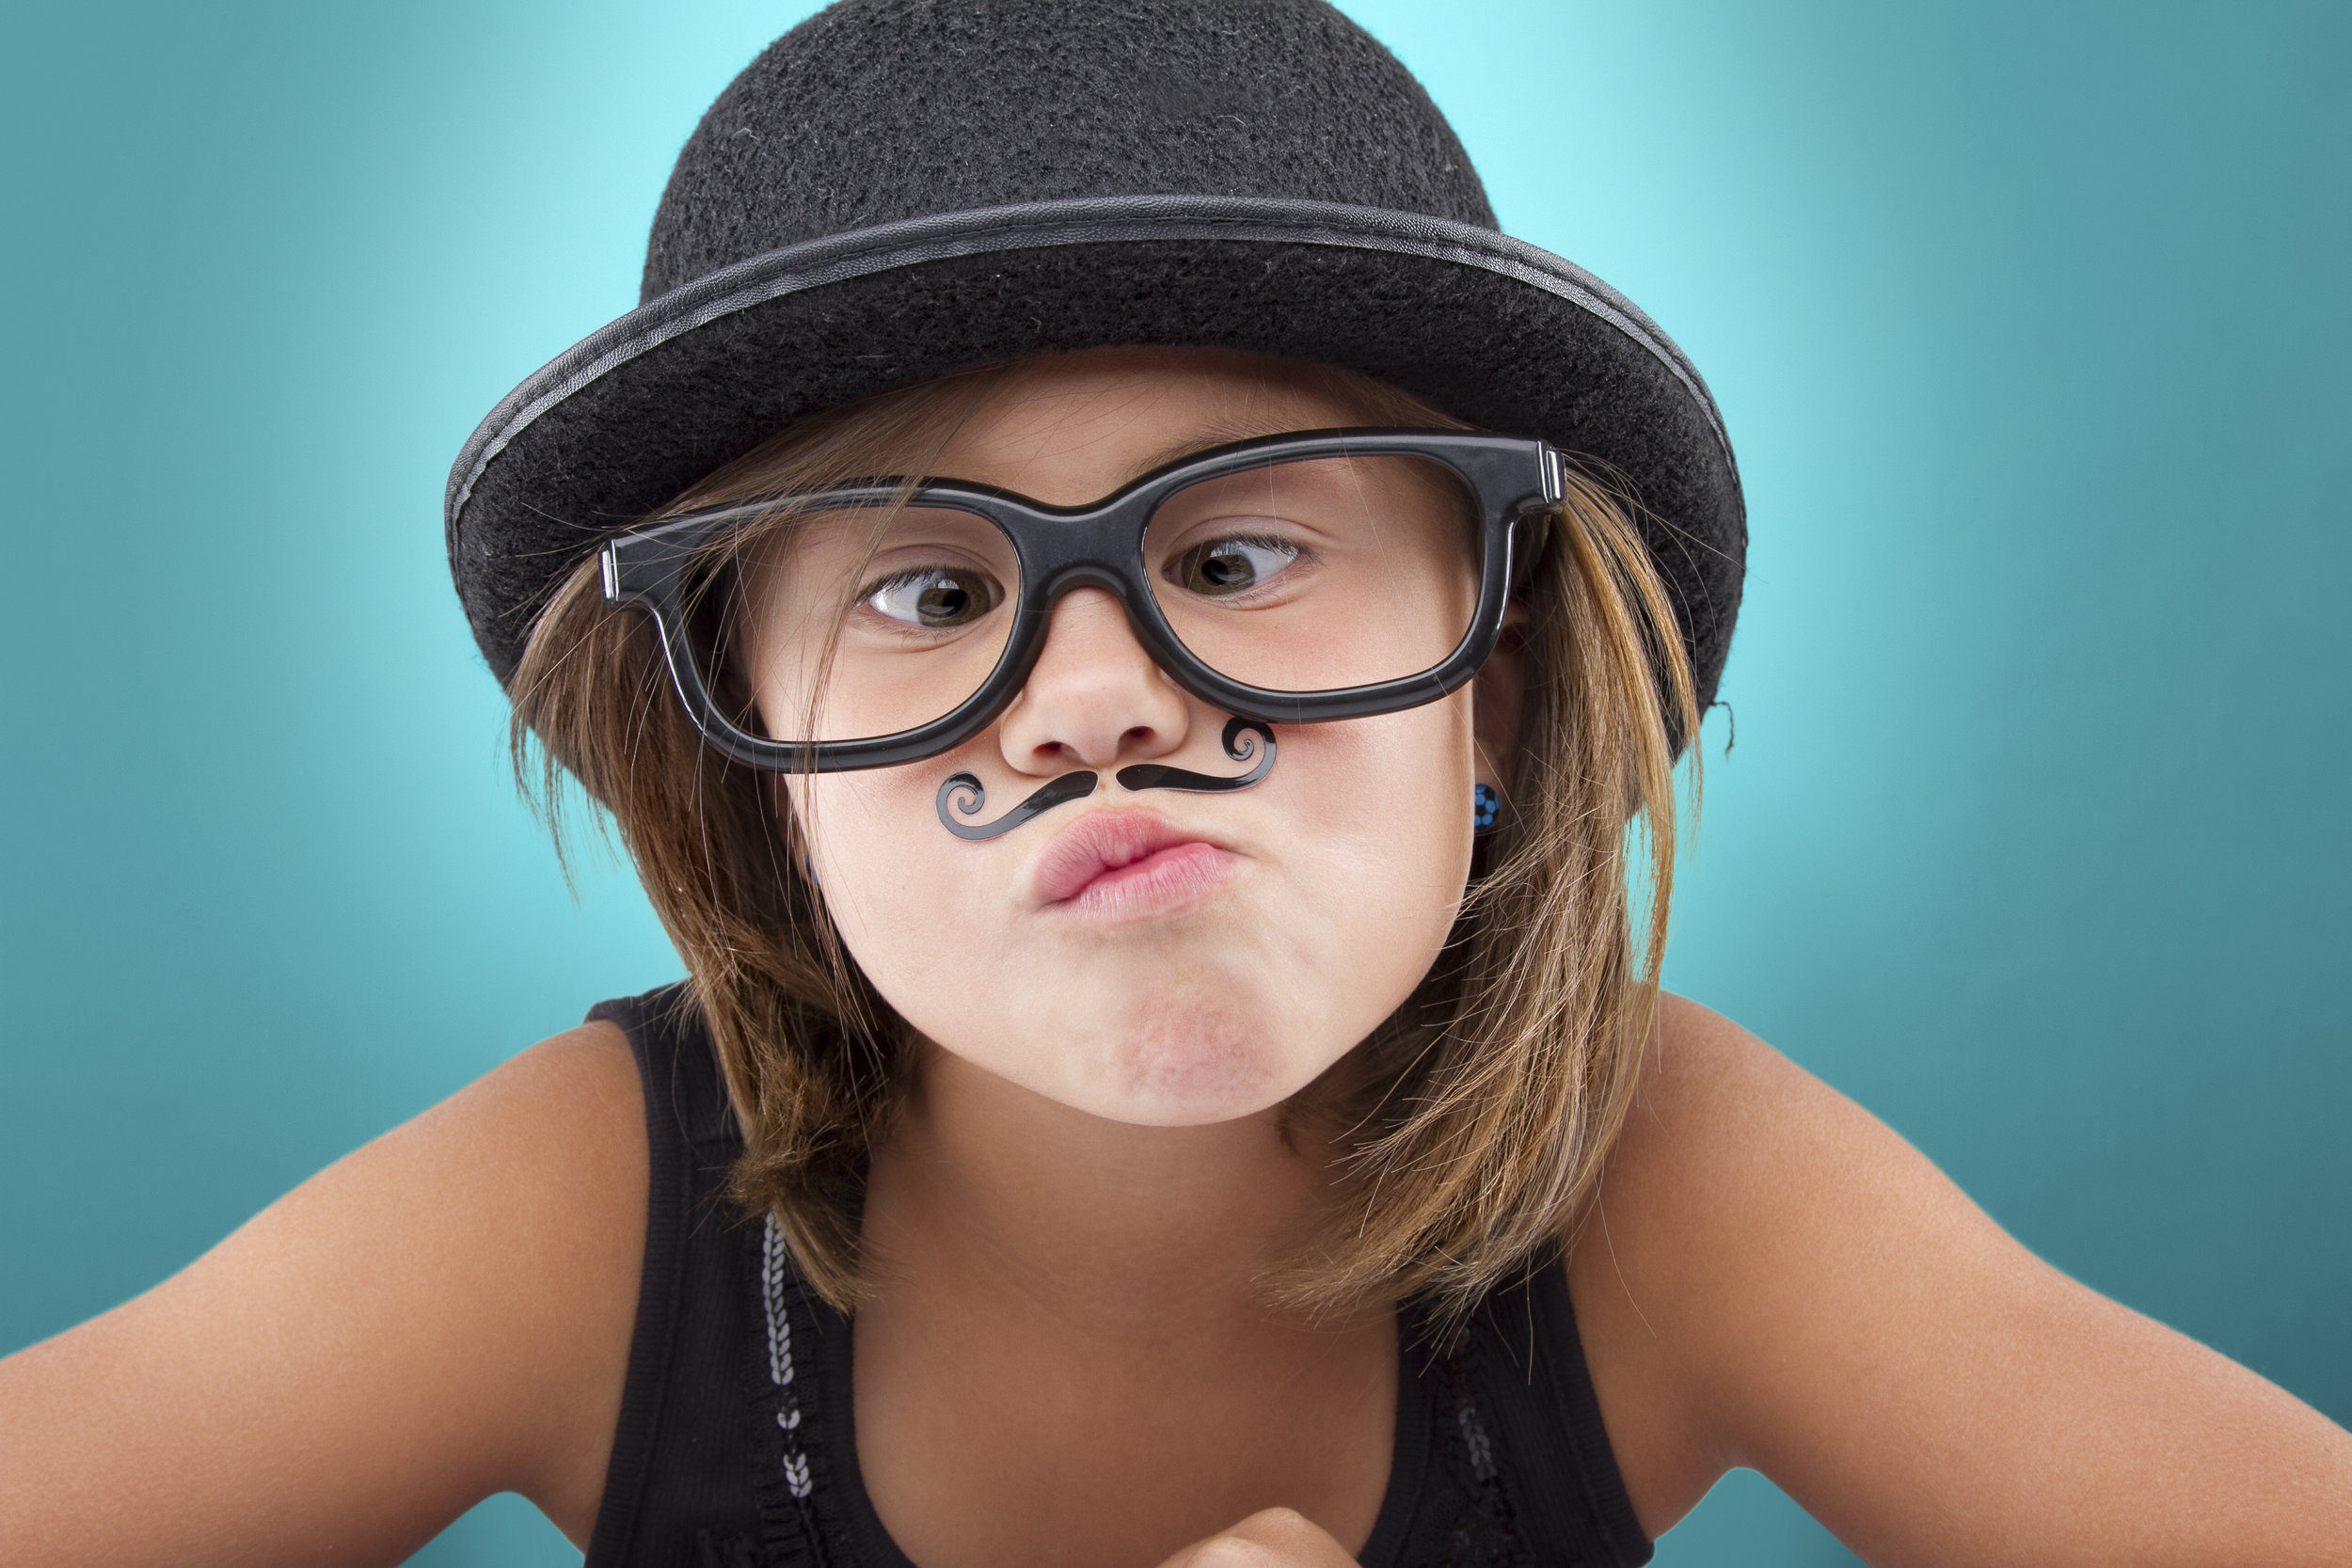 girl with hat and big glasses